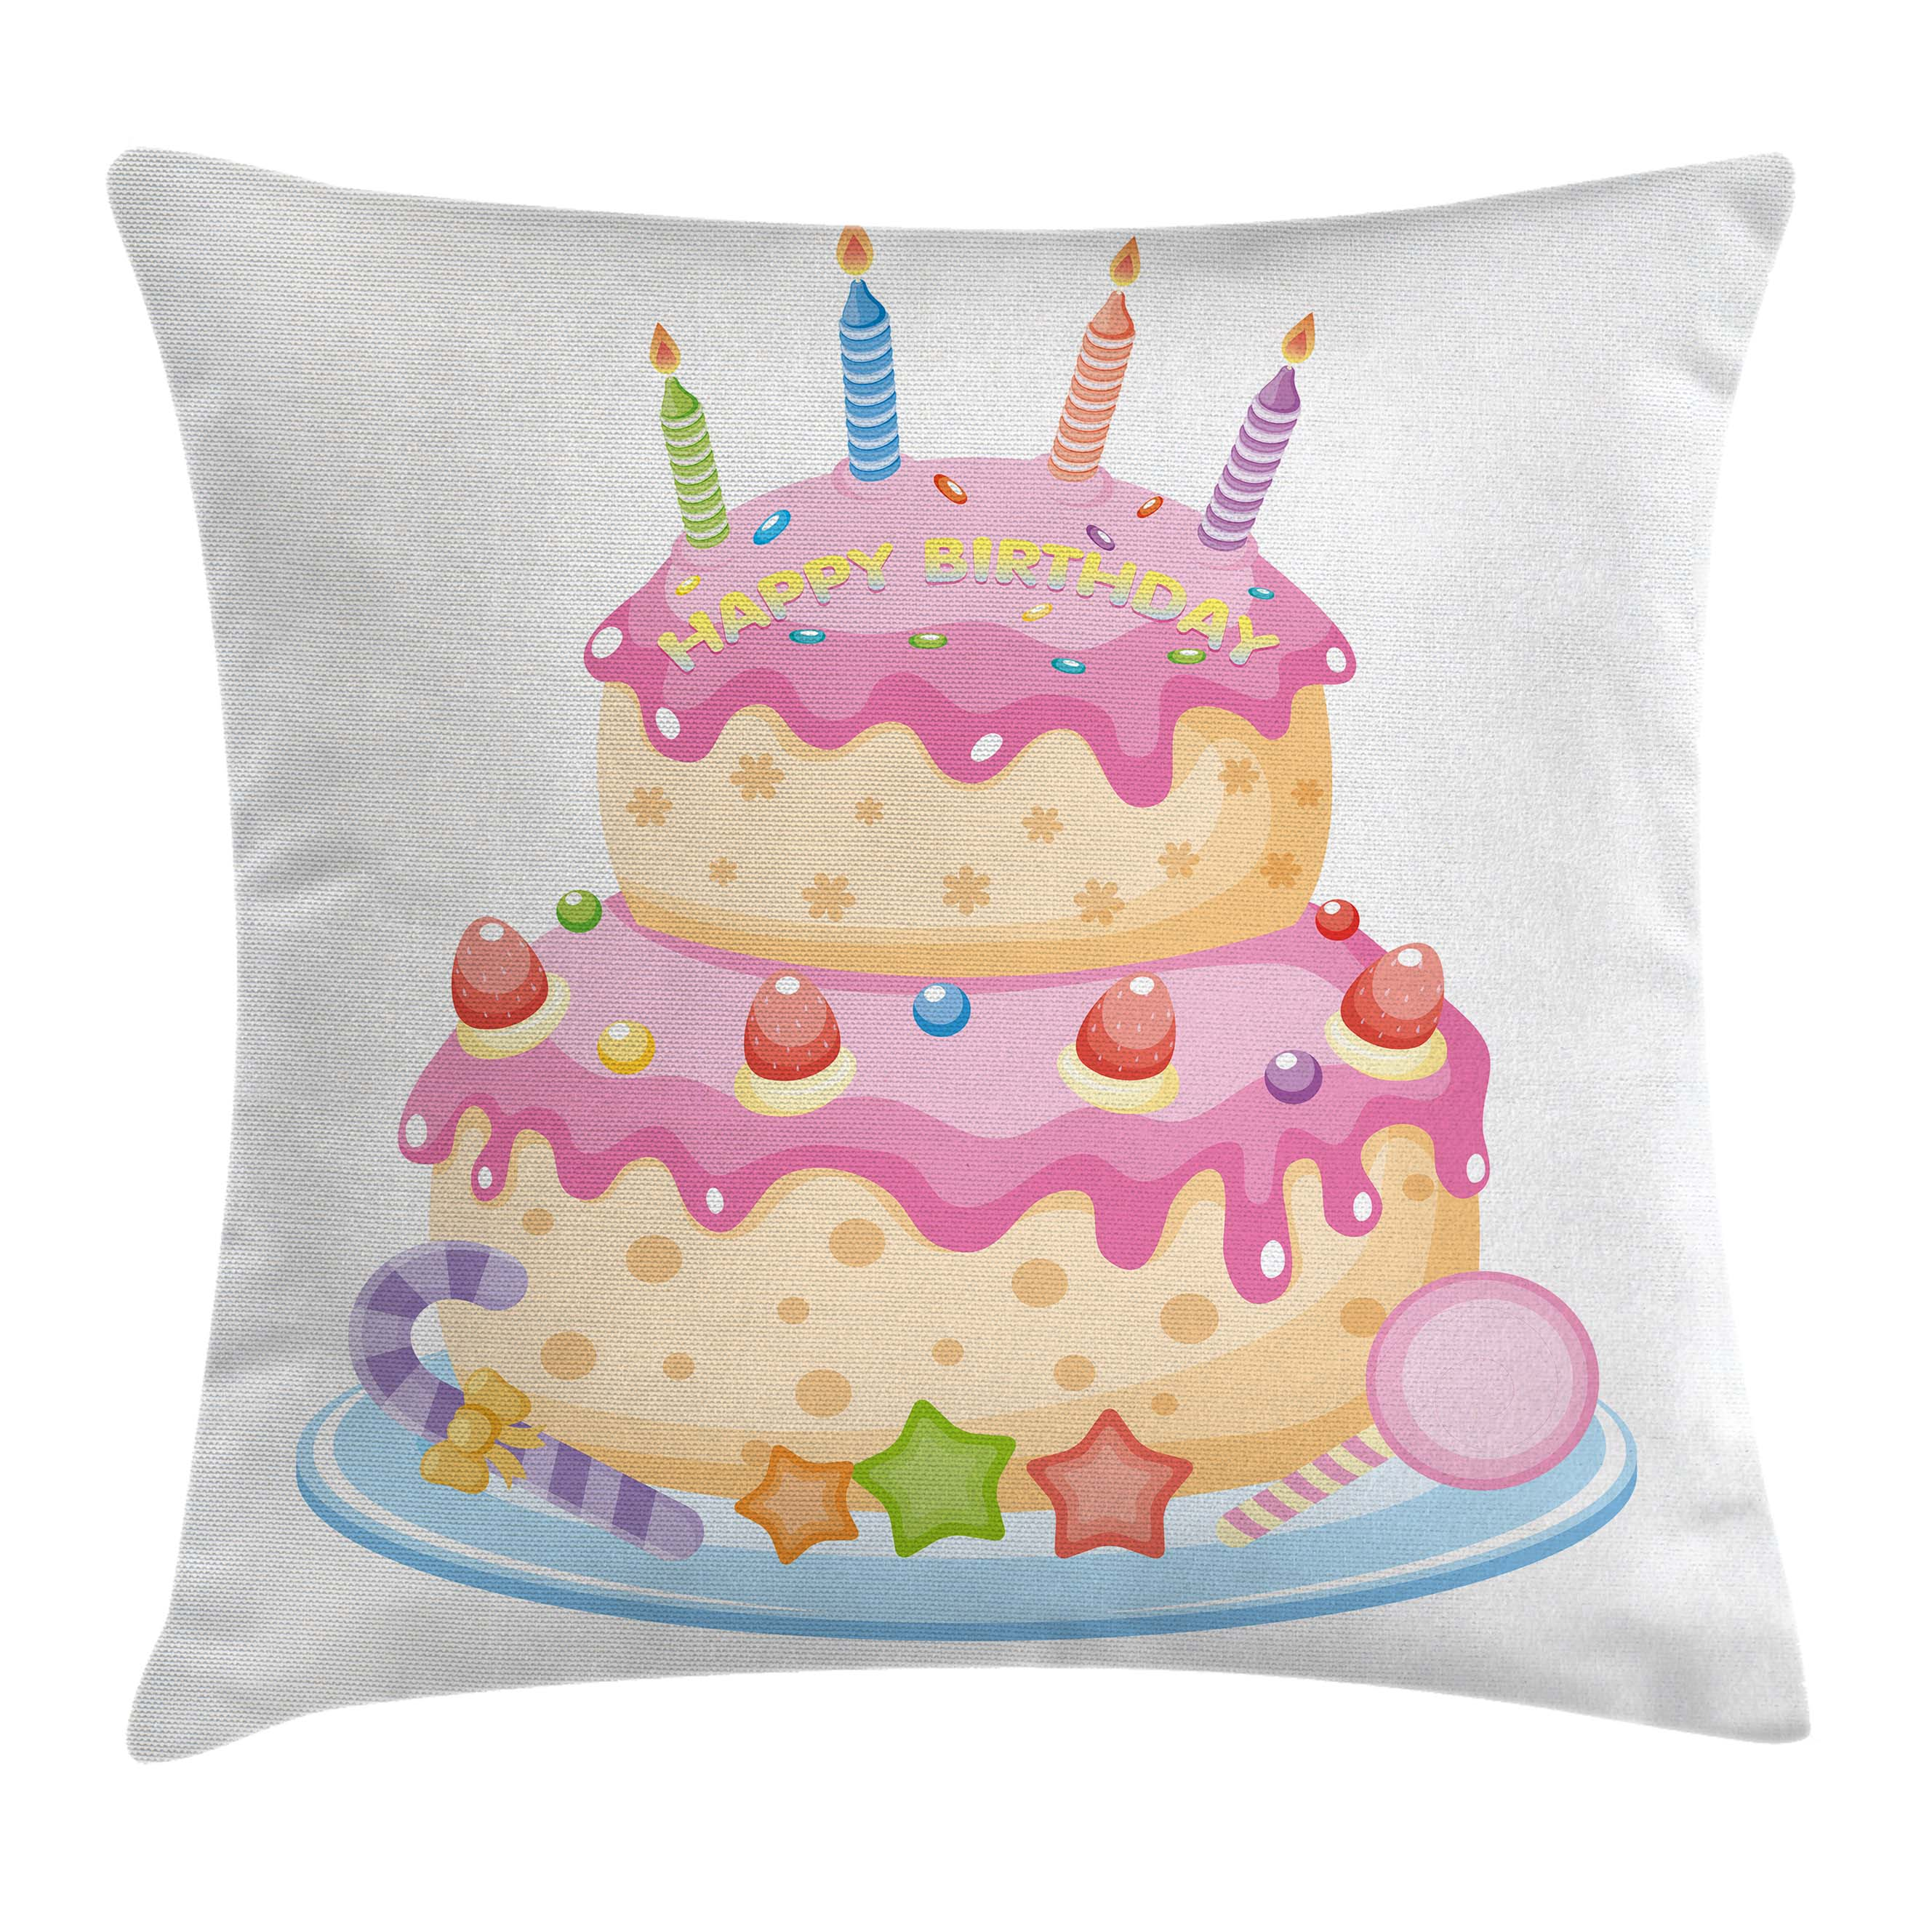 Birthday Decorations for Kids Throw Pillow Cushion Cover, Pastel Colored Birthday Party Cake with Candles and Candies, Decorative Square Accent Pillow Case, 16 X 16 Inches, Light Pink, by Ambesonne